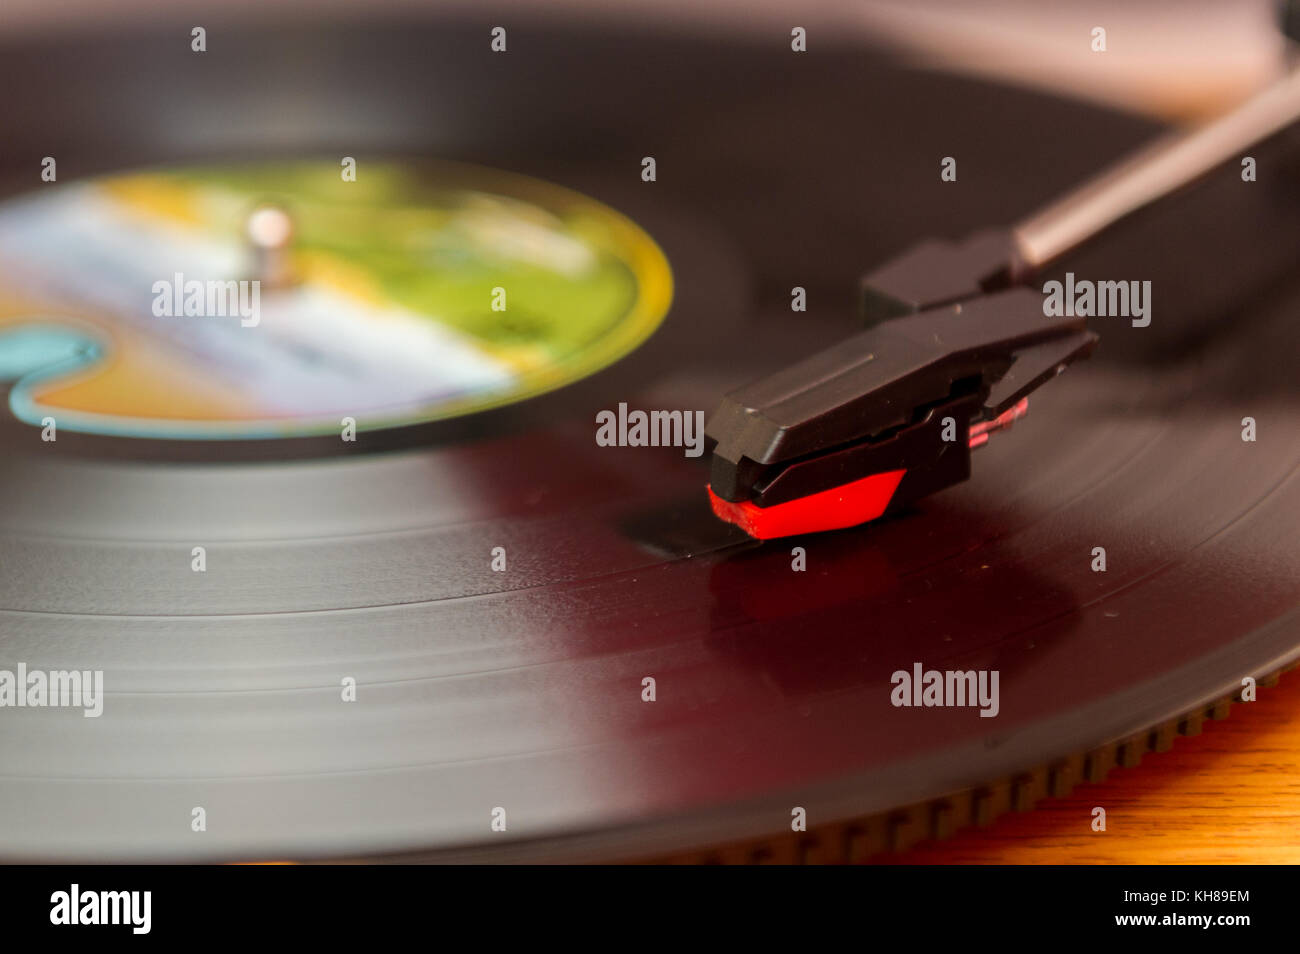 vinyl-record-album-playing-on-a-record-p